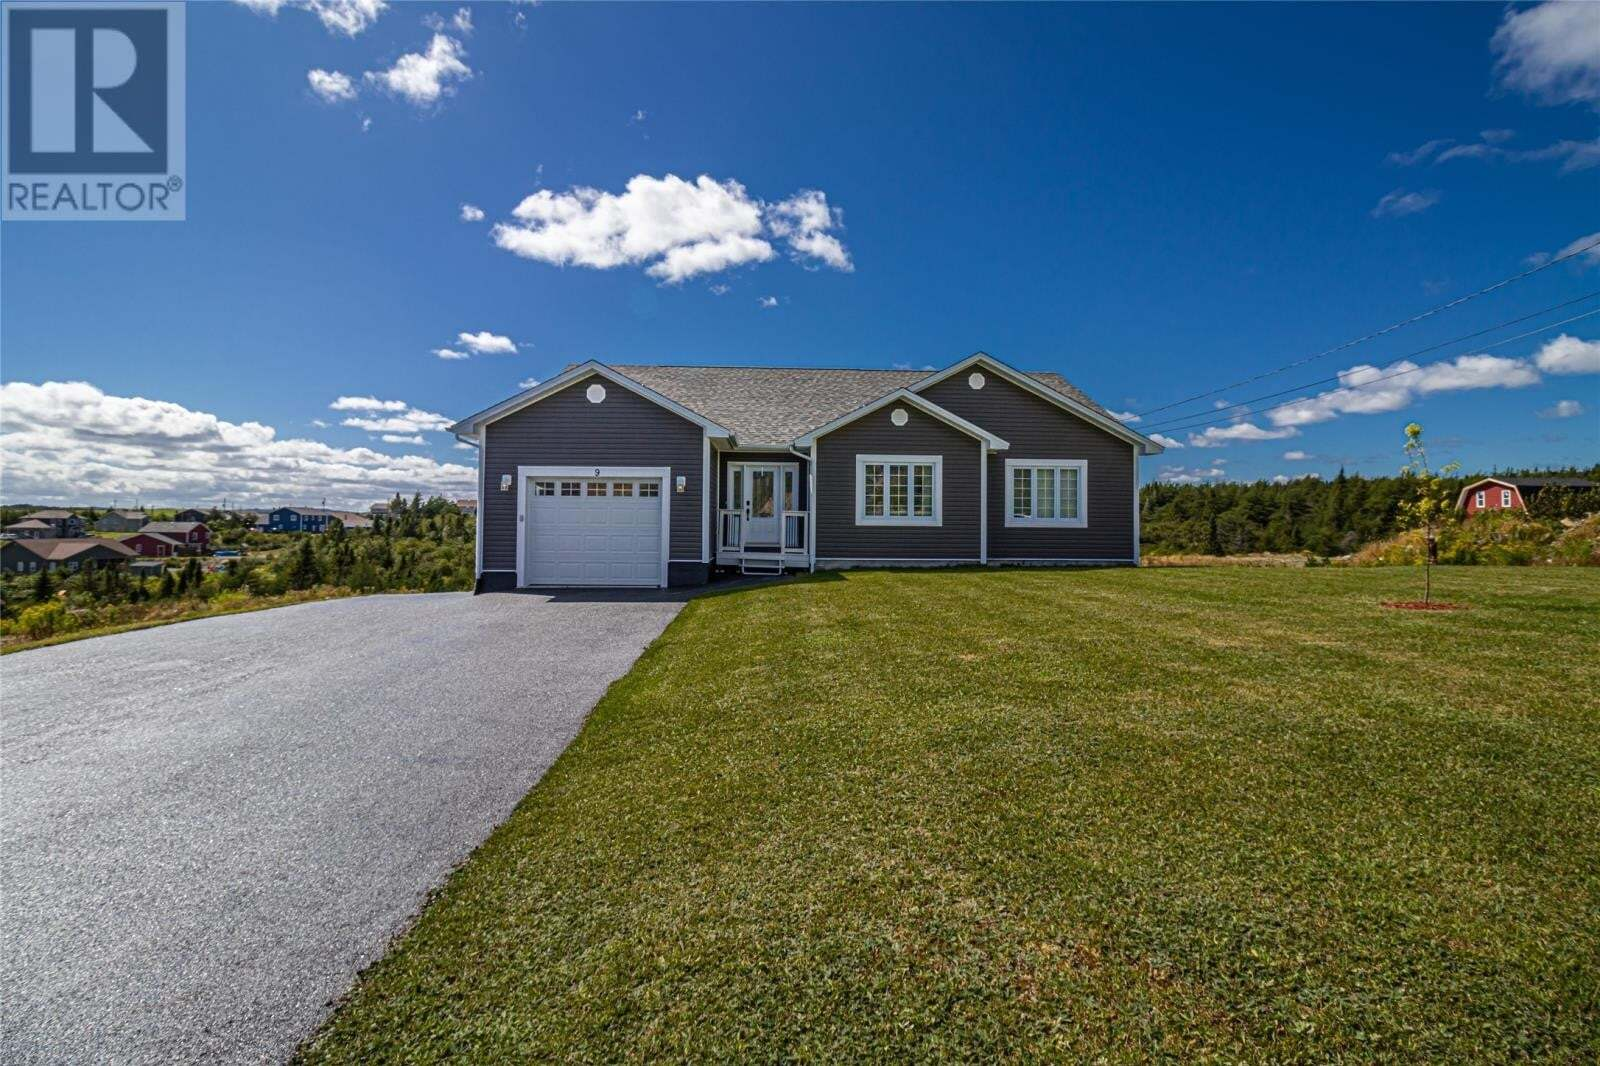 House for sale at 9 Dunn Dr Bay Bulls Newfoundland - MLS: 1221493